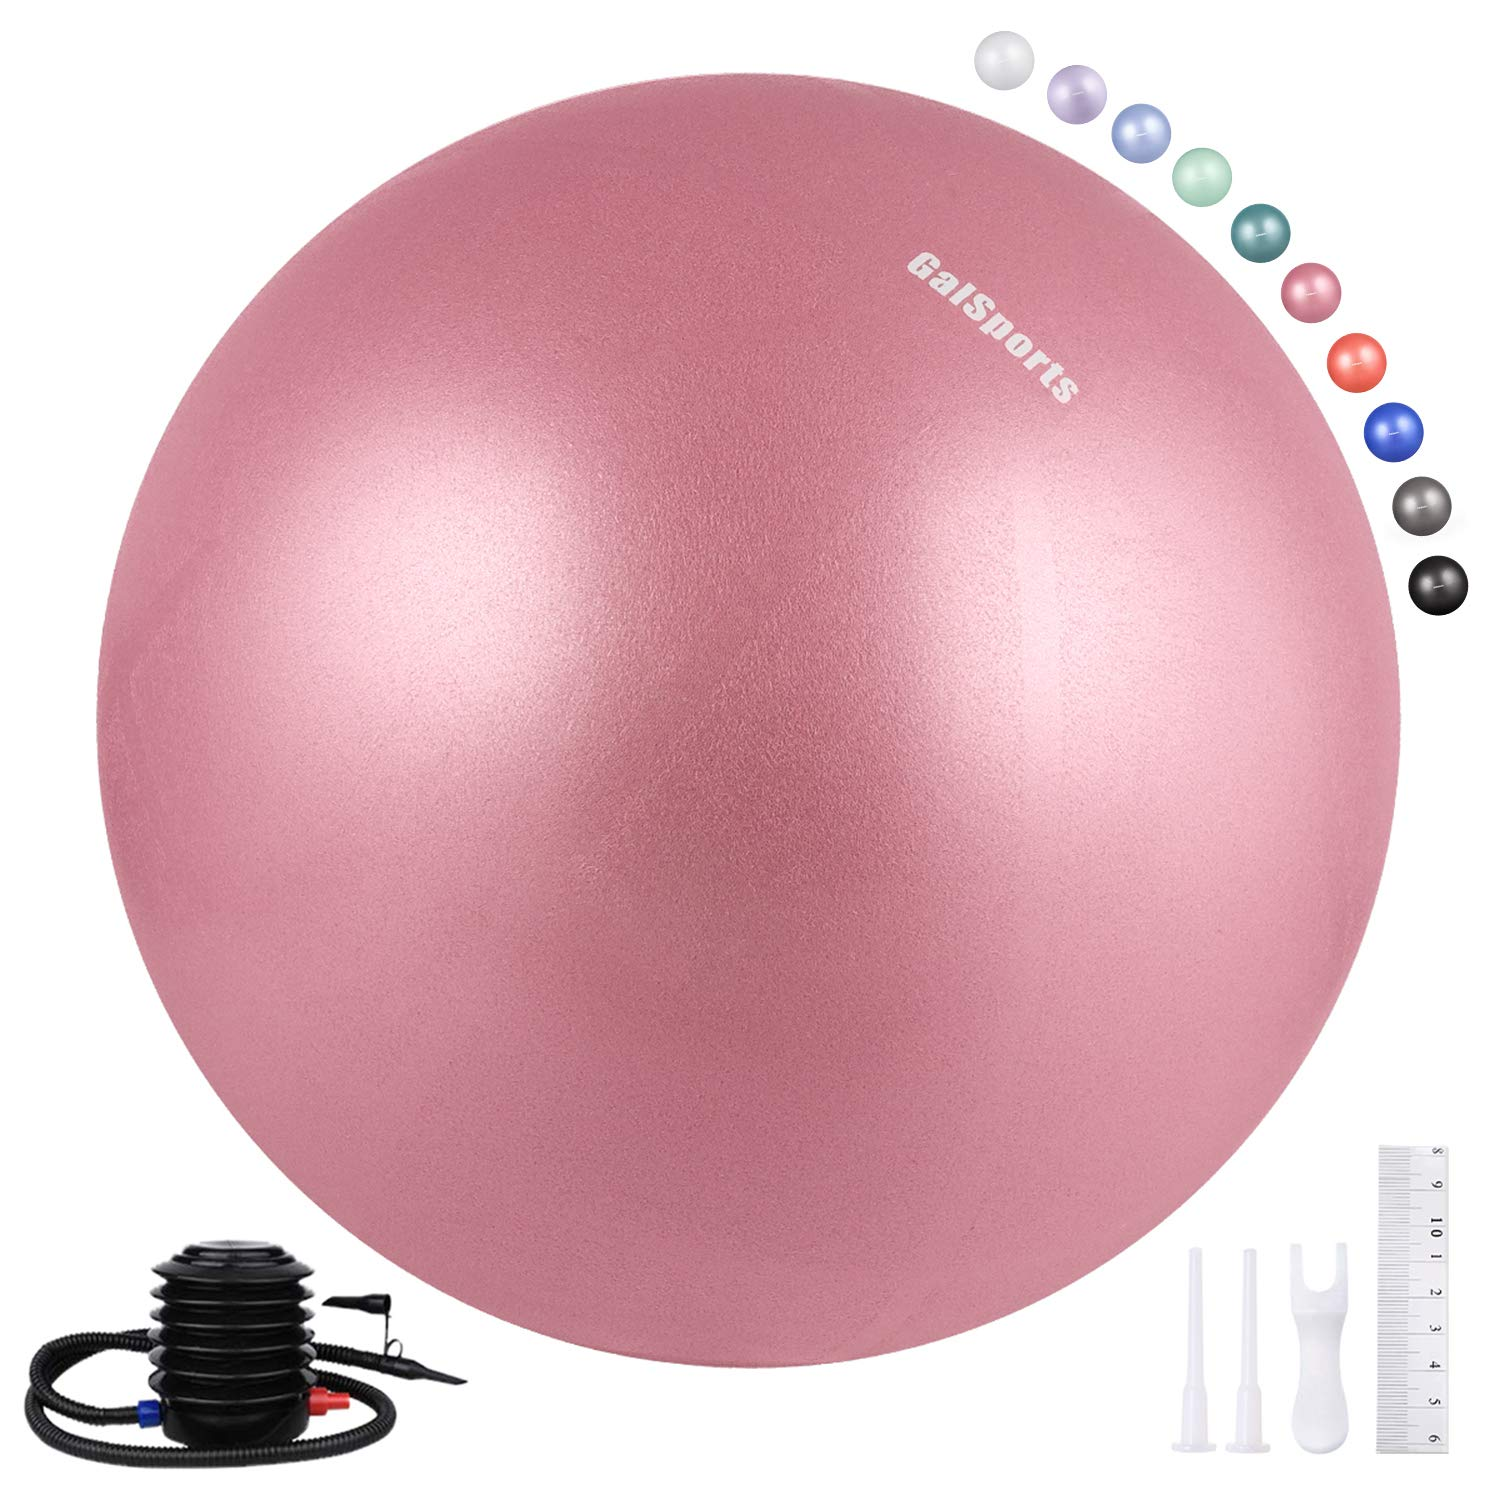 Galsports Pregnancy Birthing Ball, Yoga Exercise Birth Ball Chair for Delivery & Training & Fitness, Extra Thick Non-Toxic Anti-Burst Labor Ball with Quick Pump(Dusty Rose,L(58-65cm))